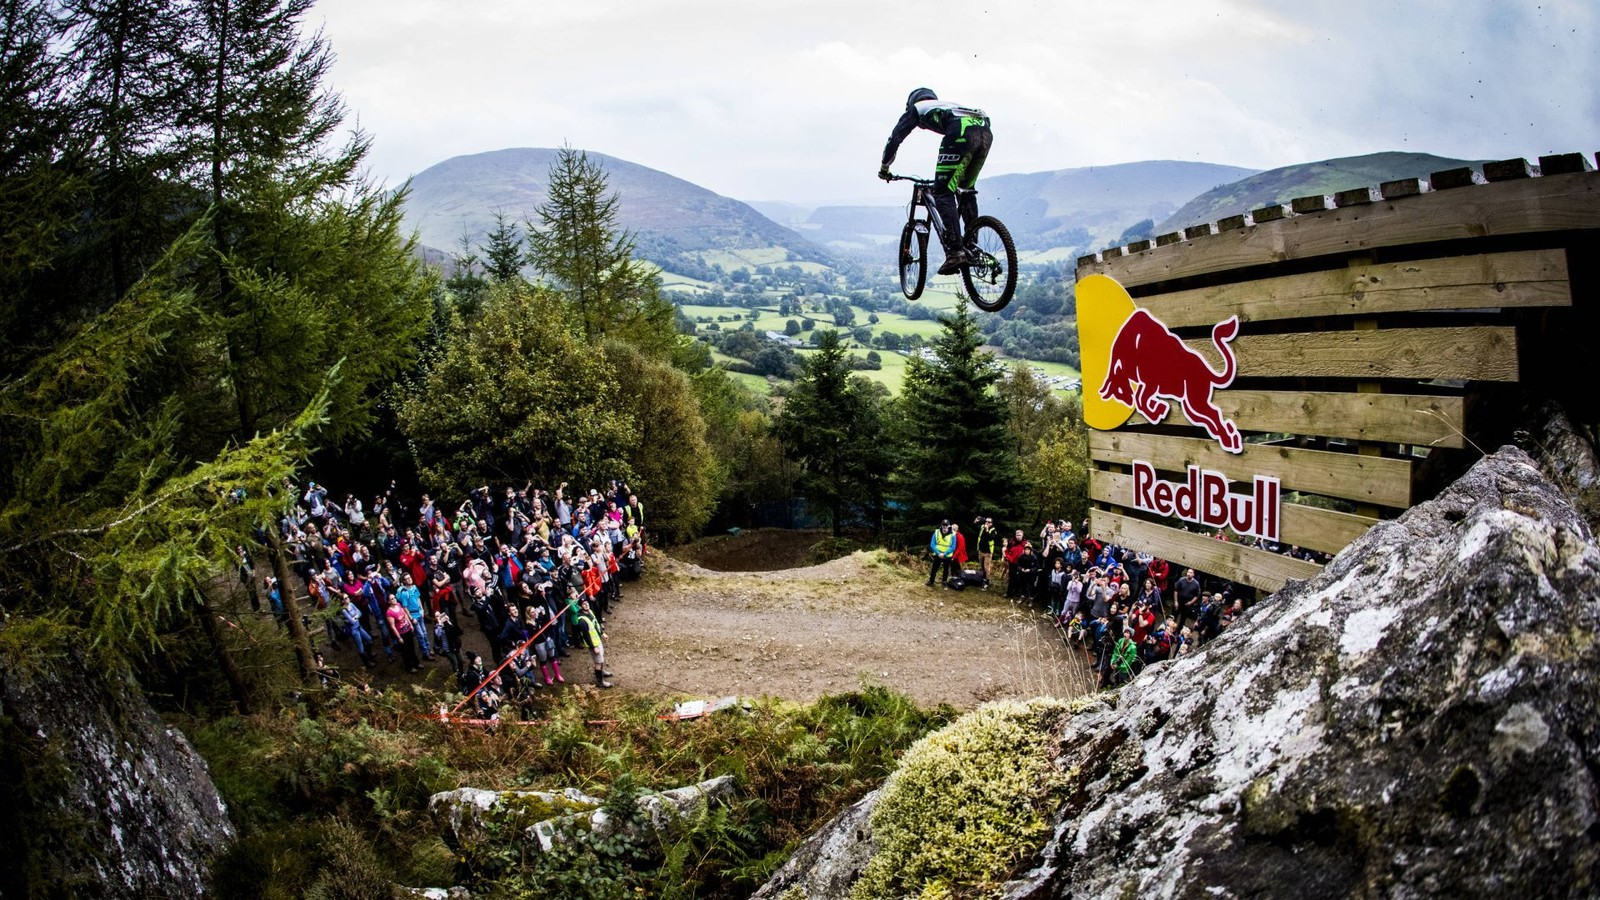 Red Bull Mountain Bike >> Red Bull Hardline Riders Announced Mountain Bikes Press Releases